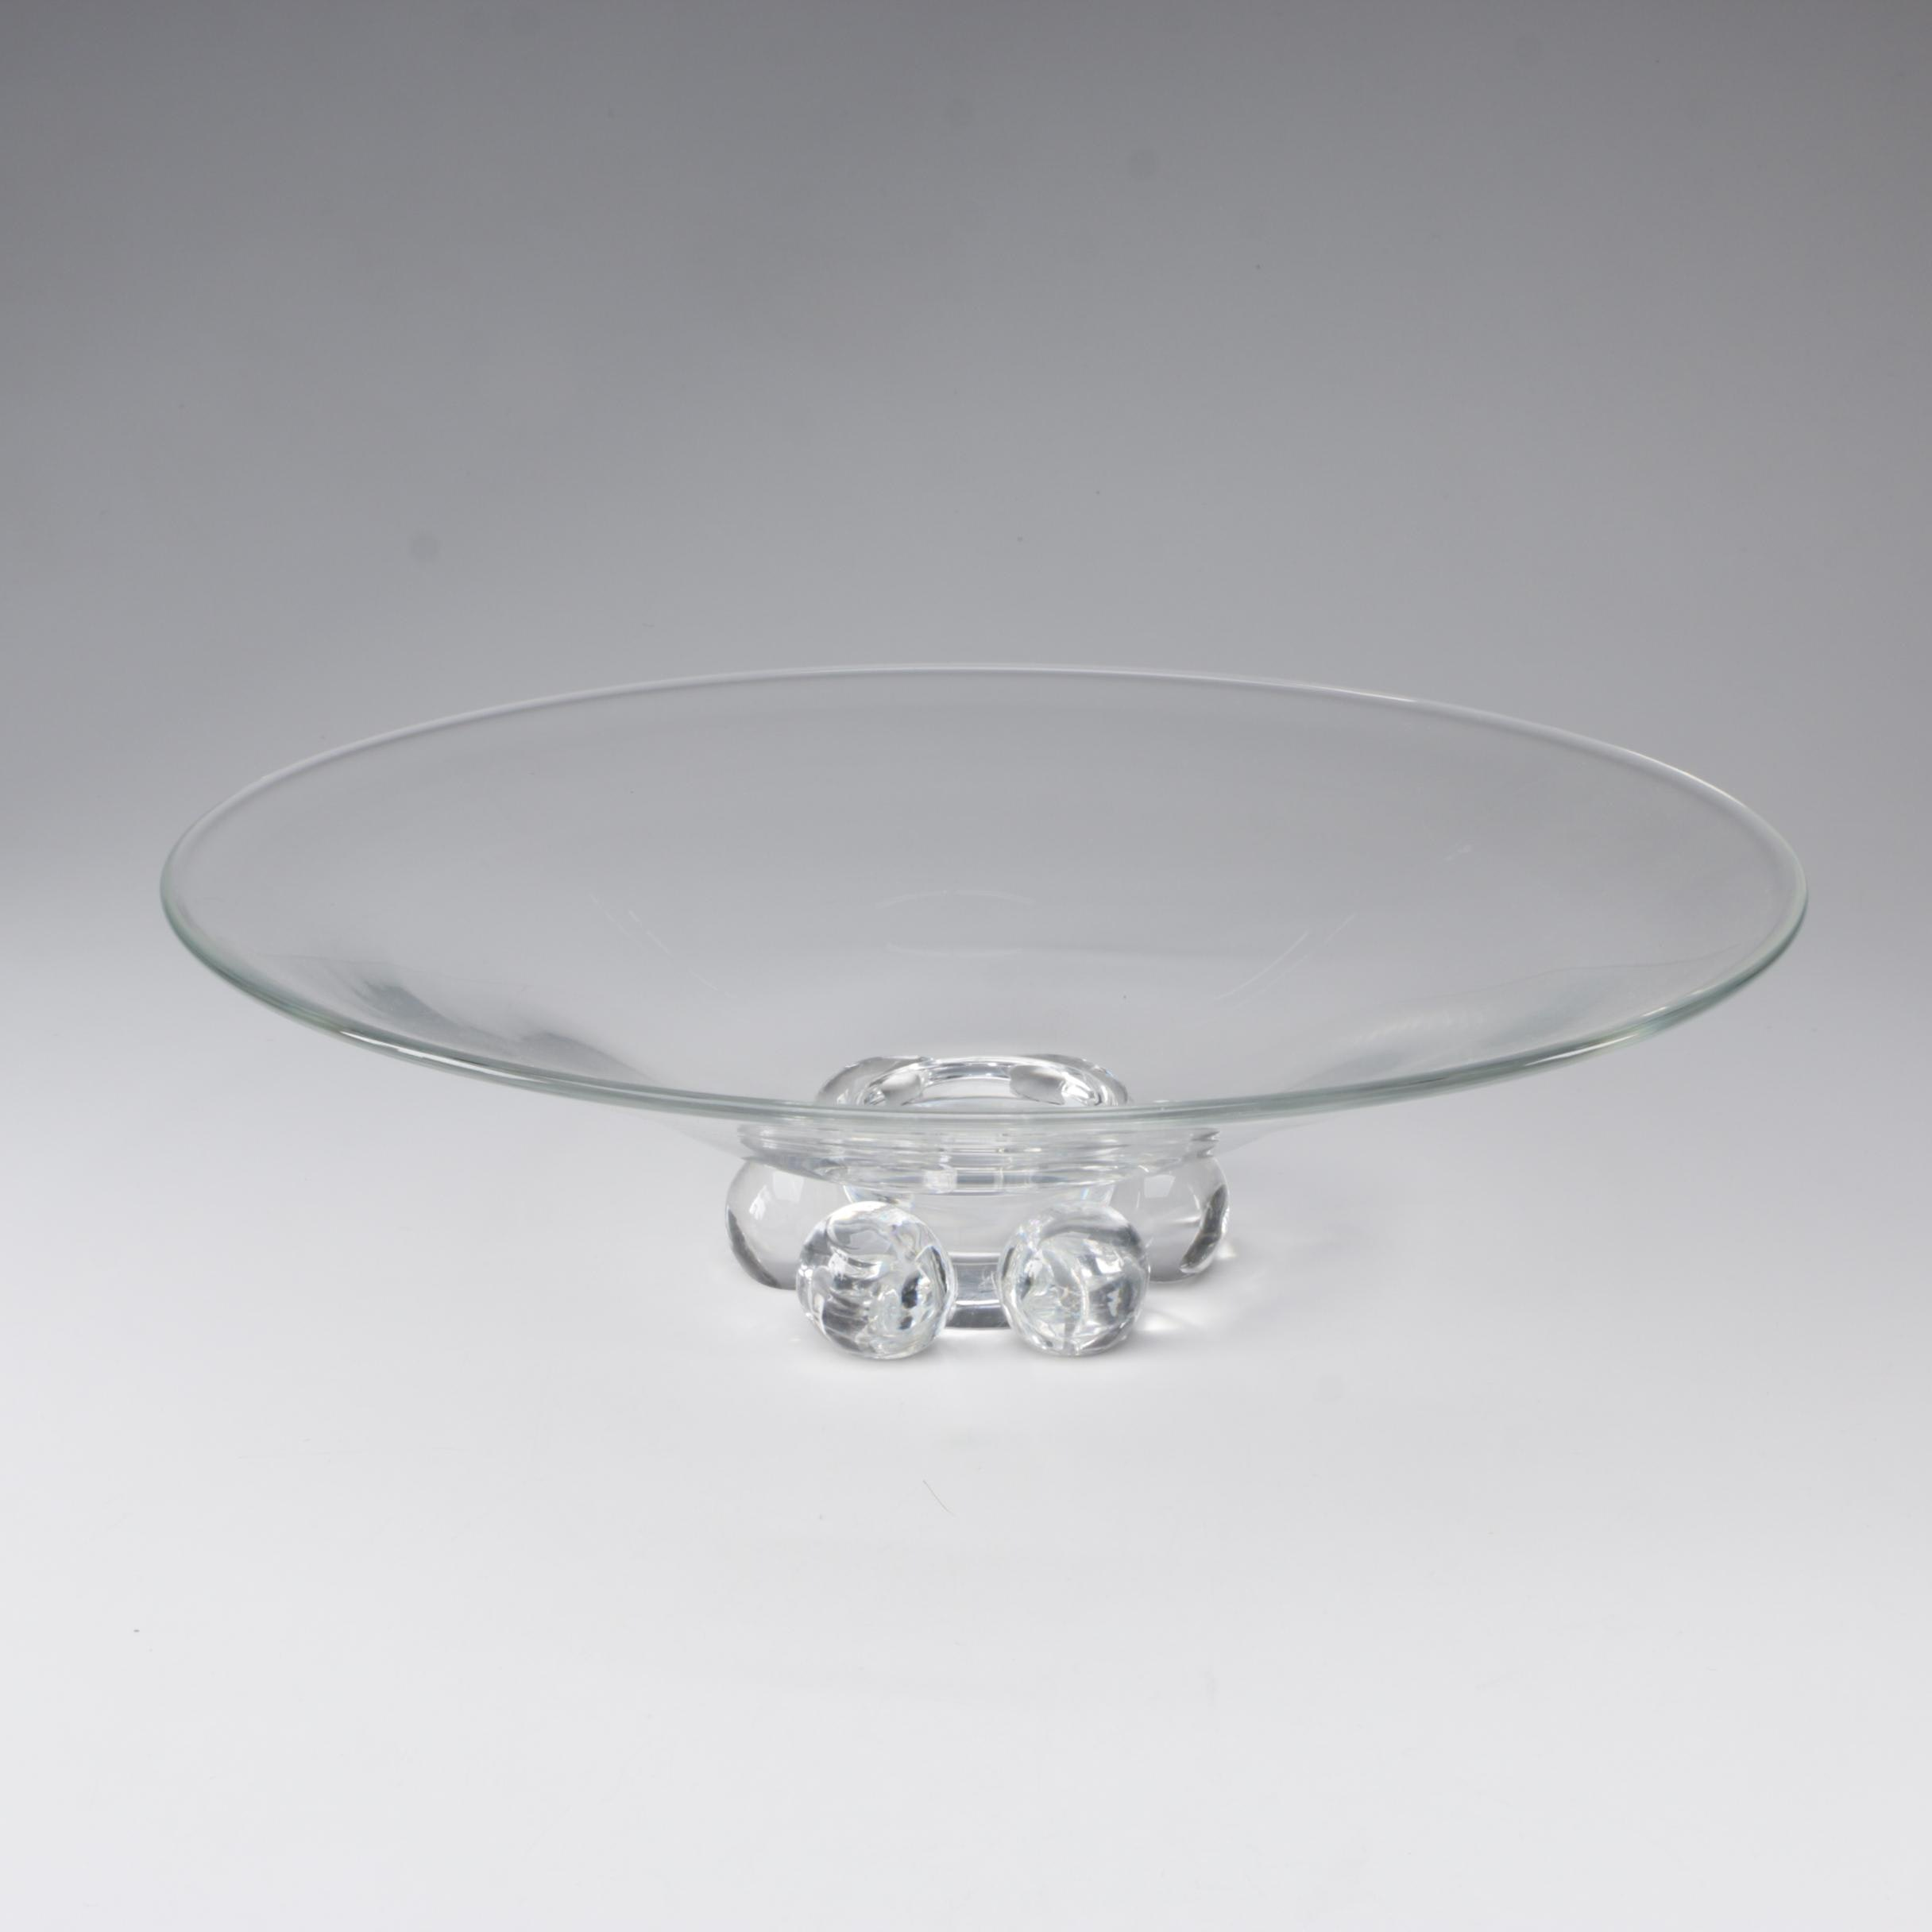 Steuben Art Glass Large Centerpiece Bowl with Sphered Base, Mid-Century